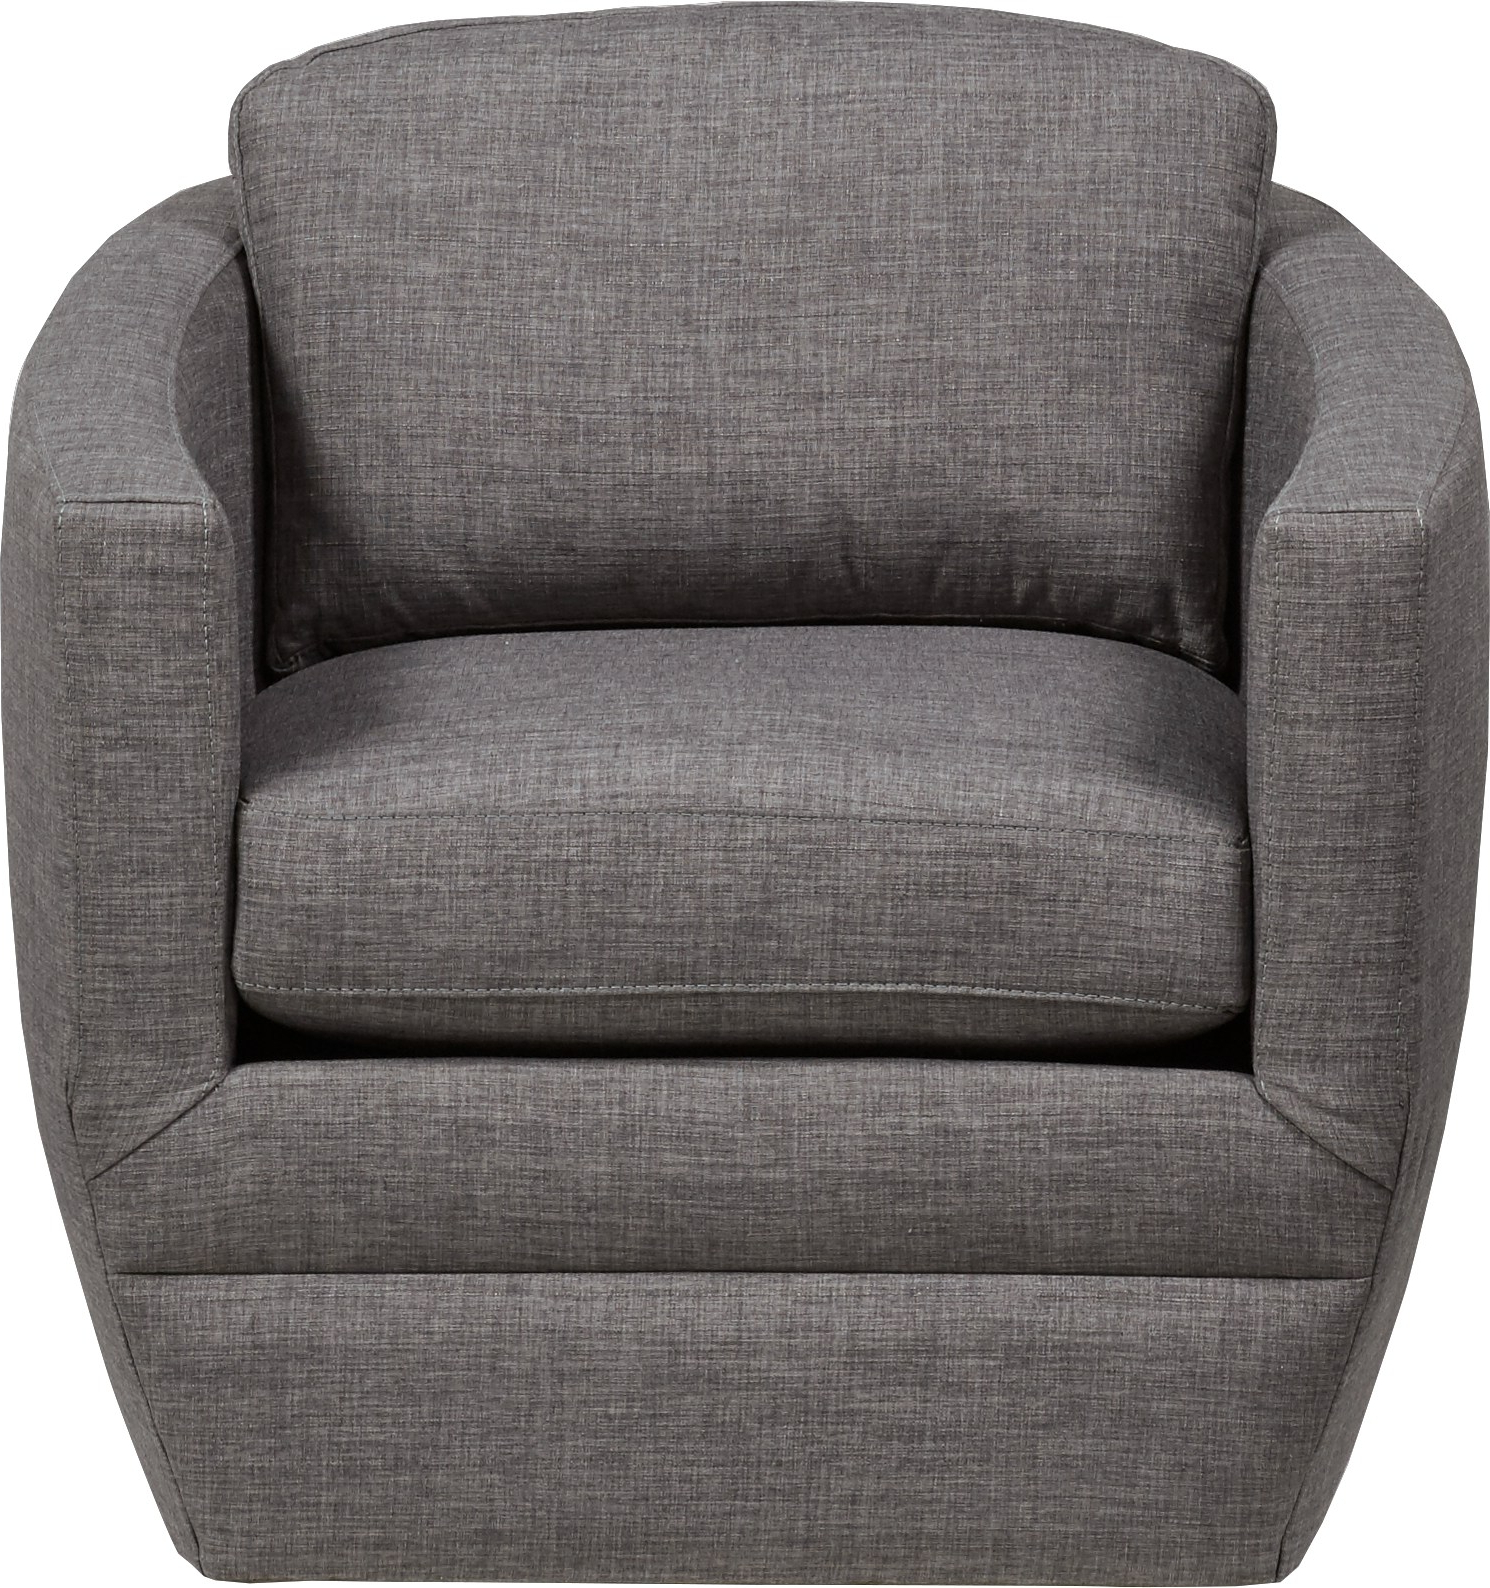 Fashionable Dark Grey Swivel Chairs Regarding Harbour City San Marino Dark Gray Swivel Chair – Chairs (Gray) (View 8 of 20)